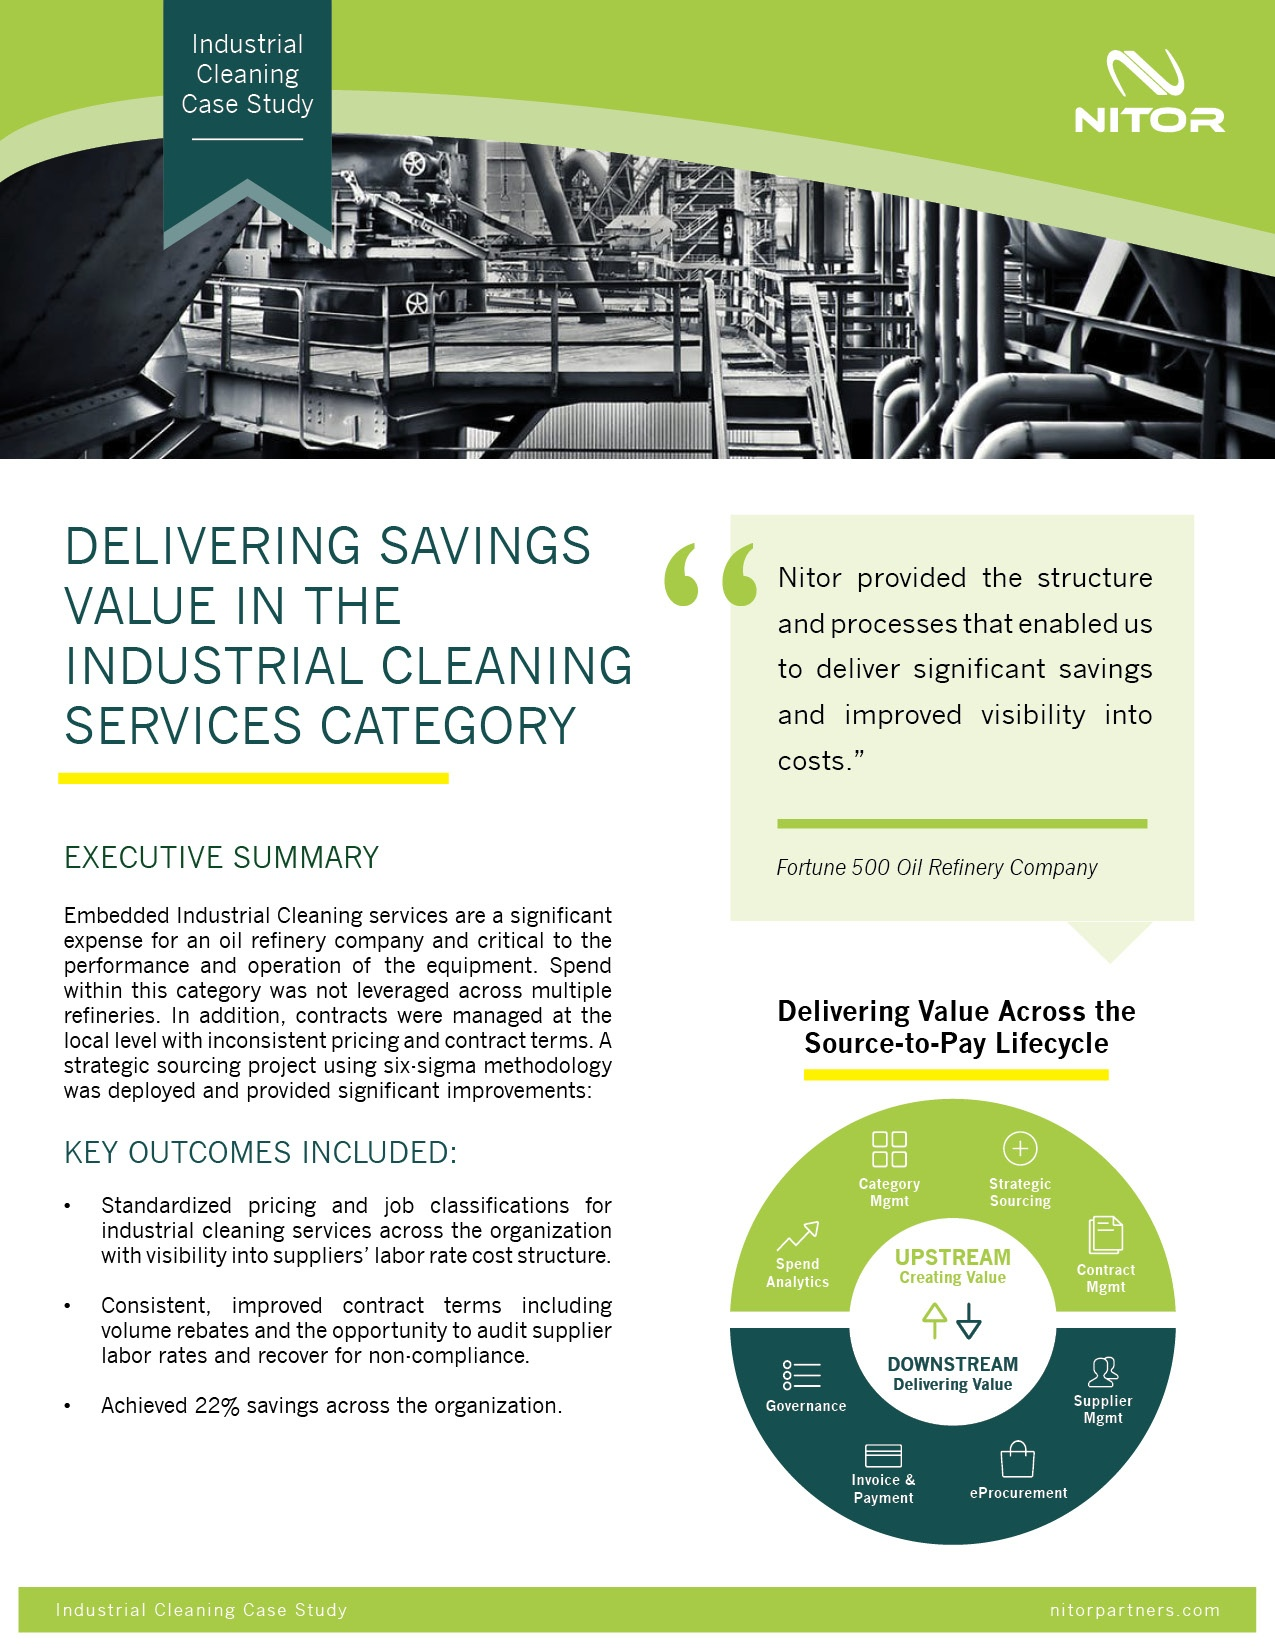 Nitor Strategic Sourcing Case Study Industrial Cleaning